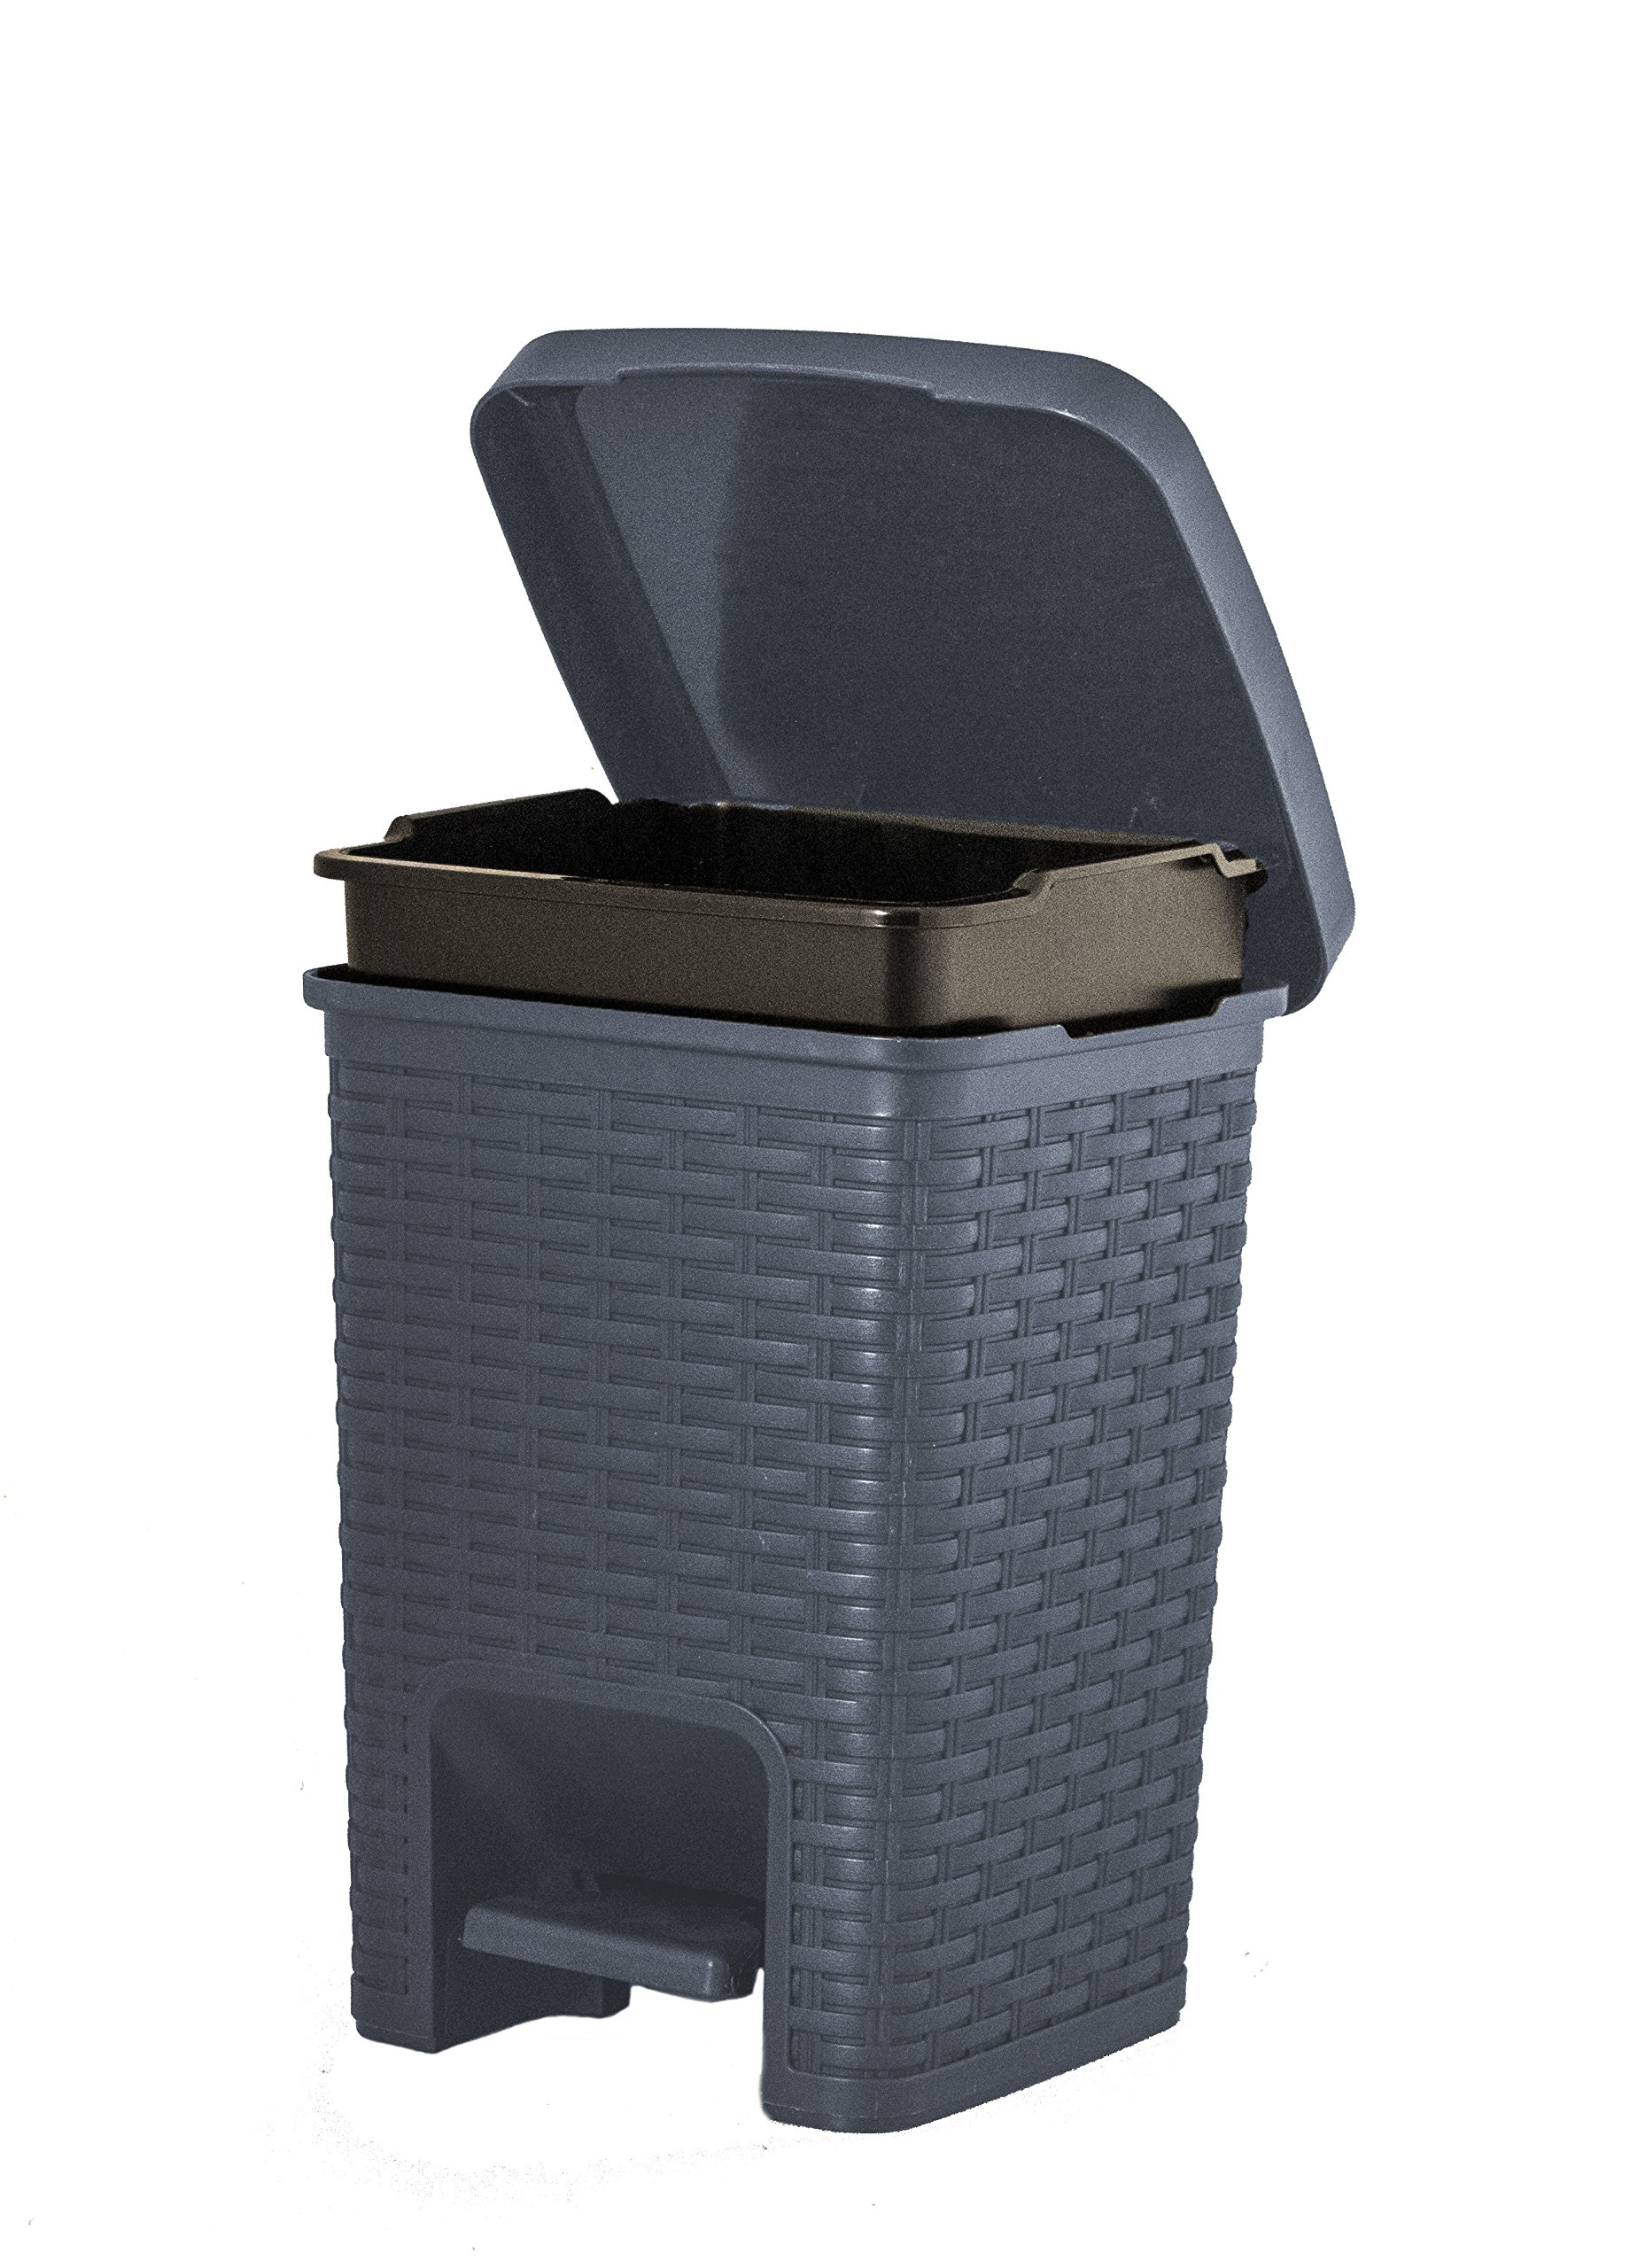 Superio Square Pedal Trash Can, Rattan Style, 7.5 Qt (Grey)